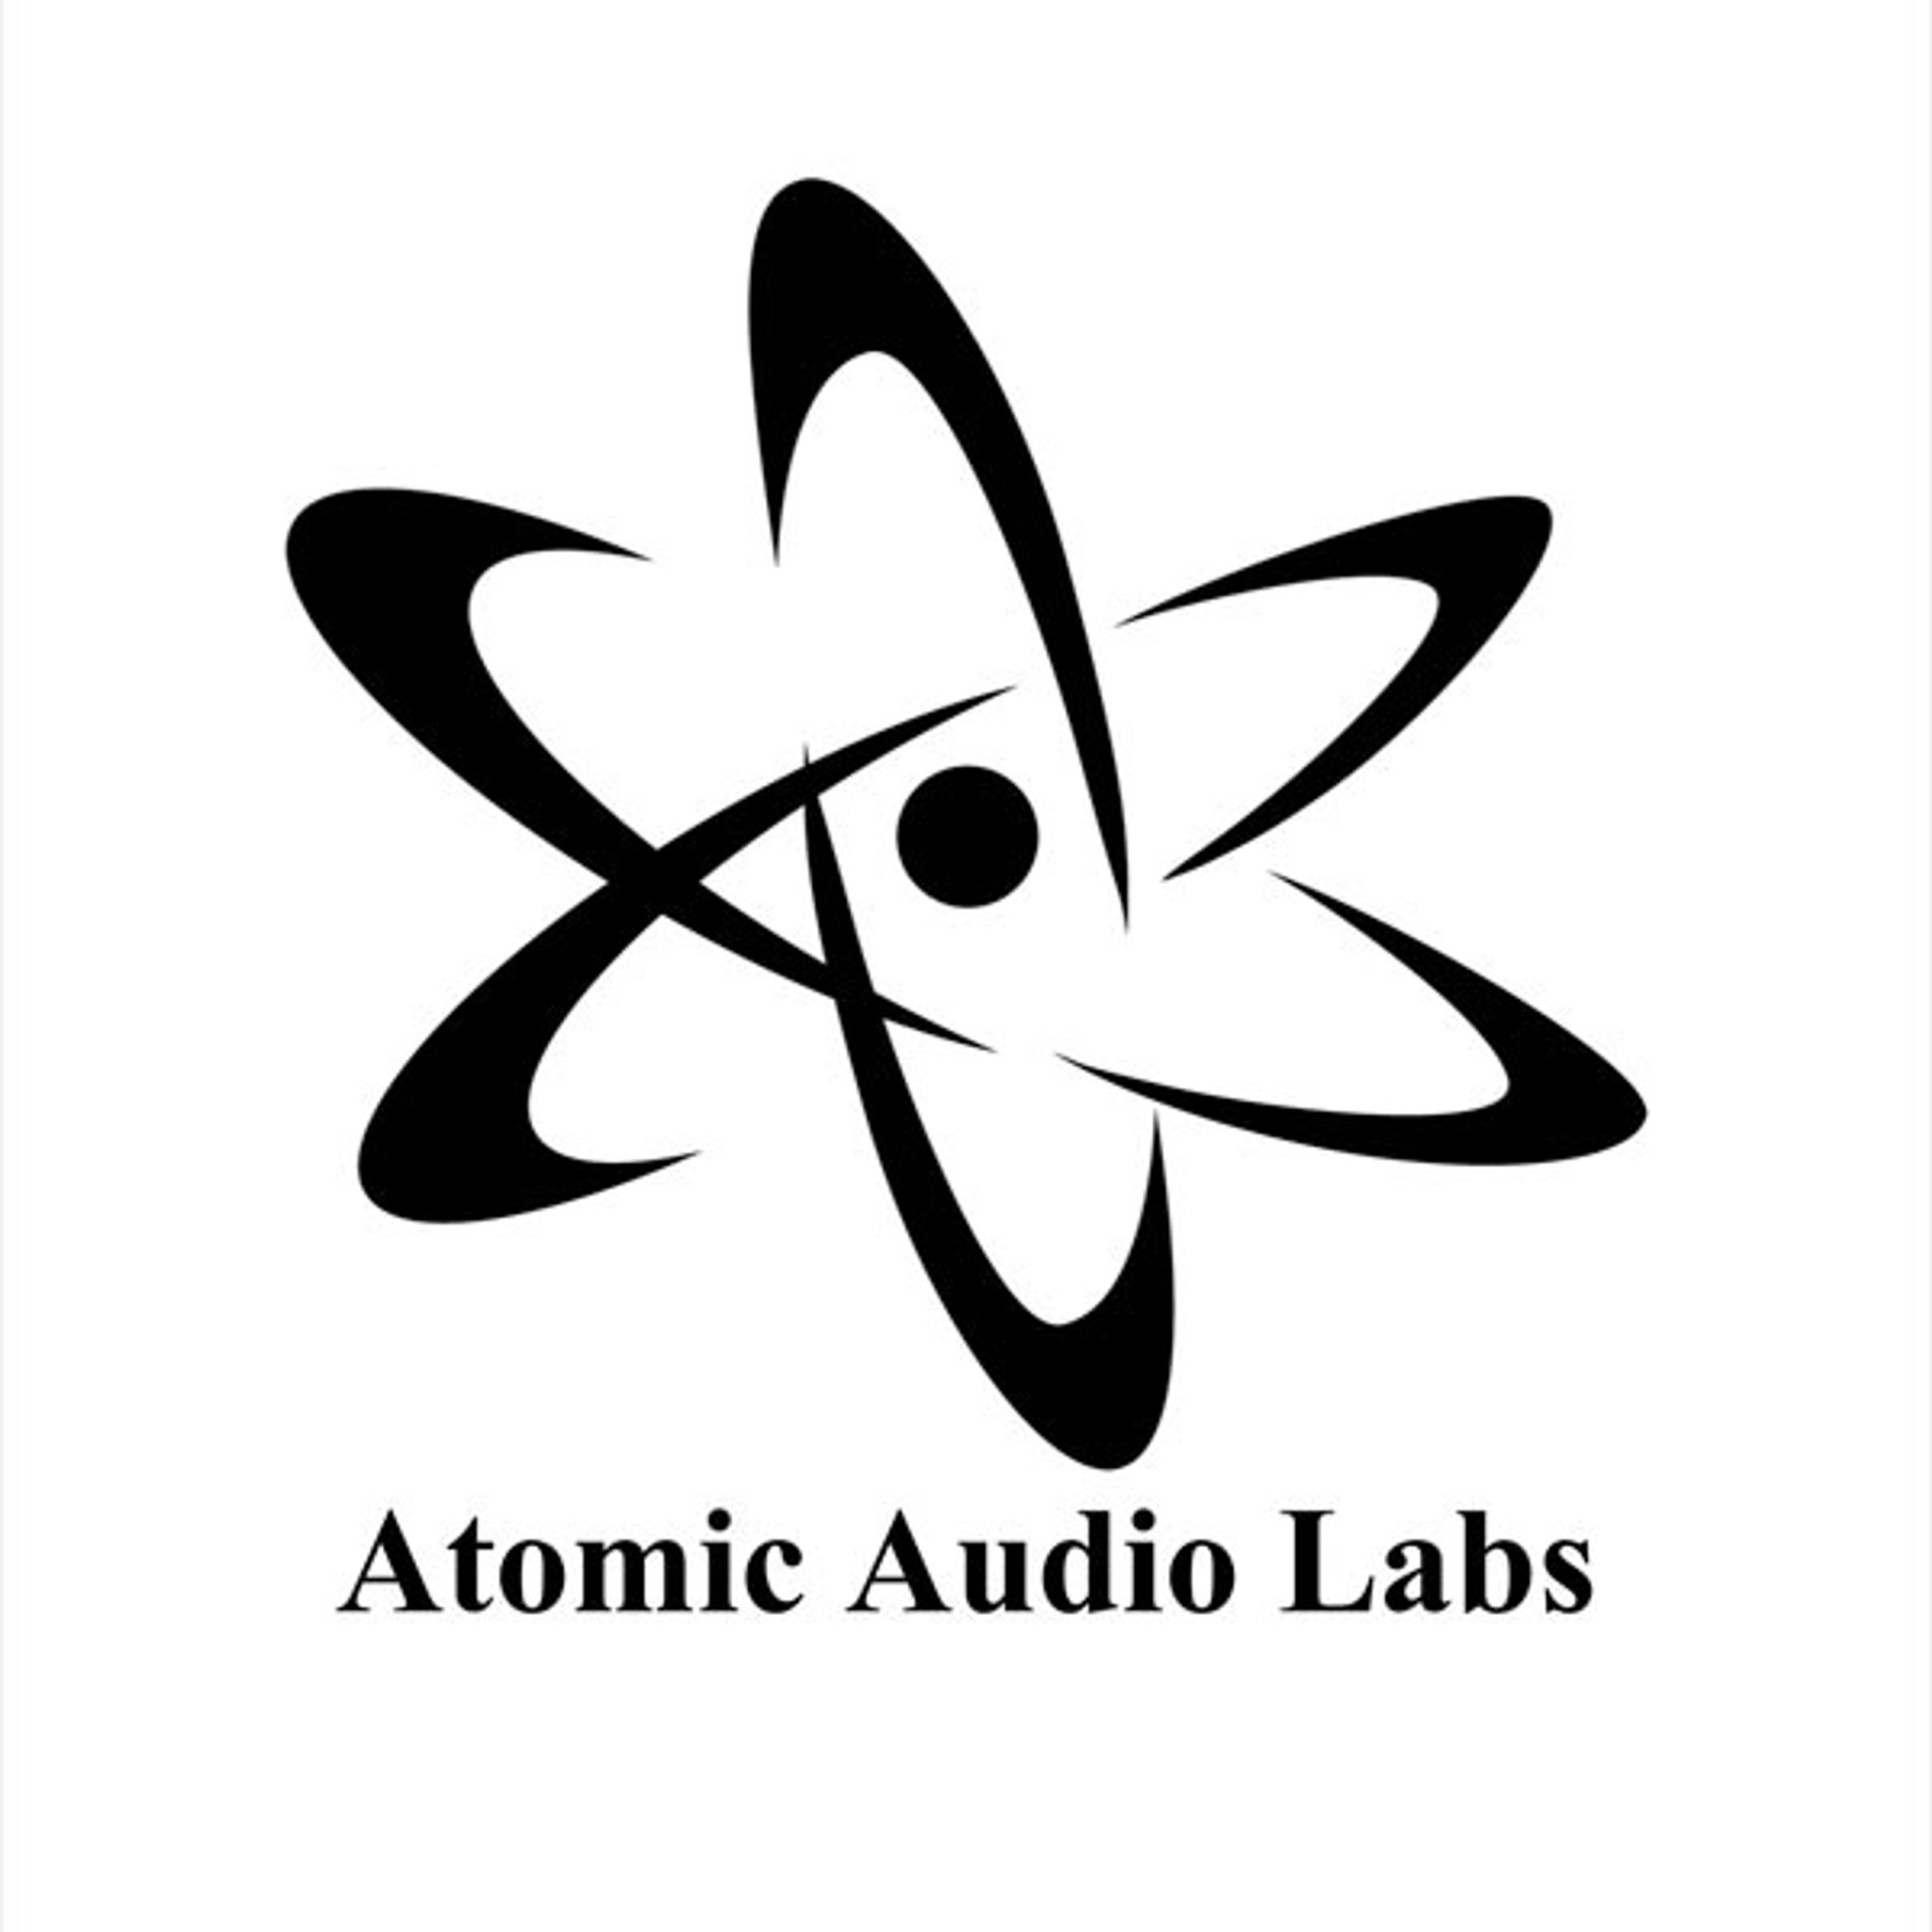 Atomic Audio Labs